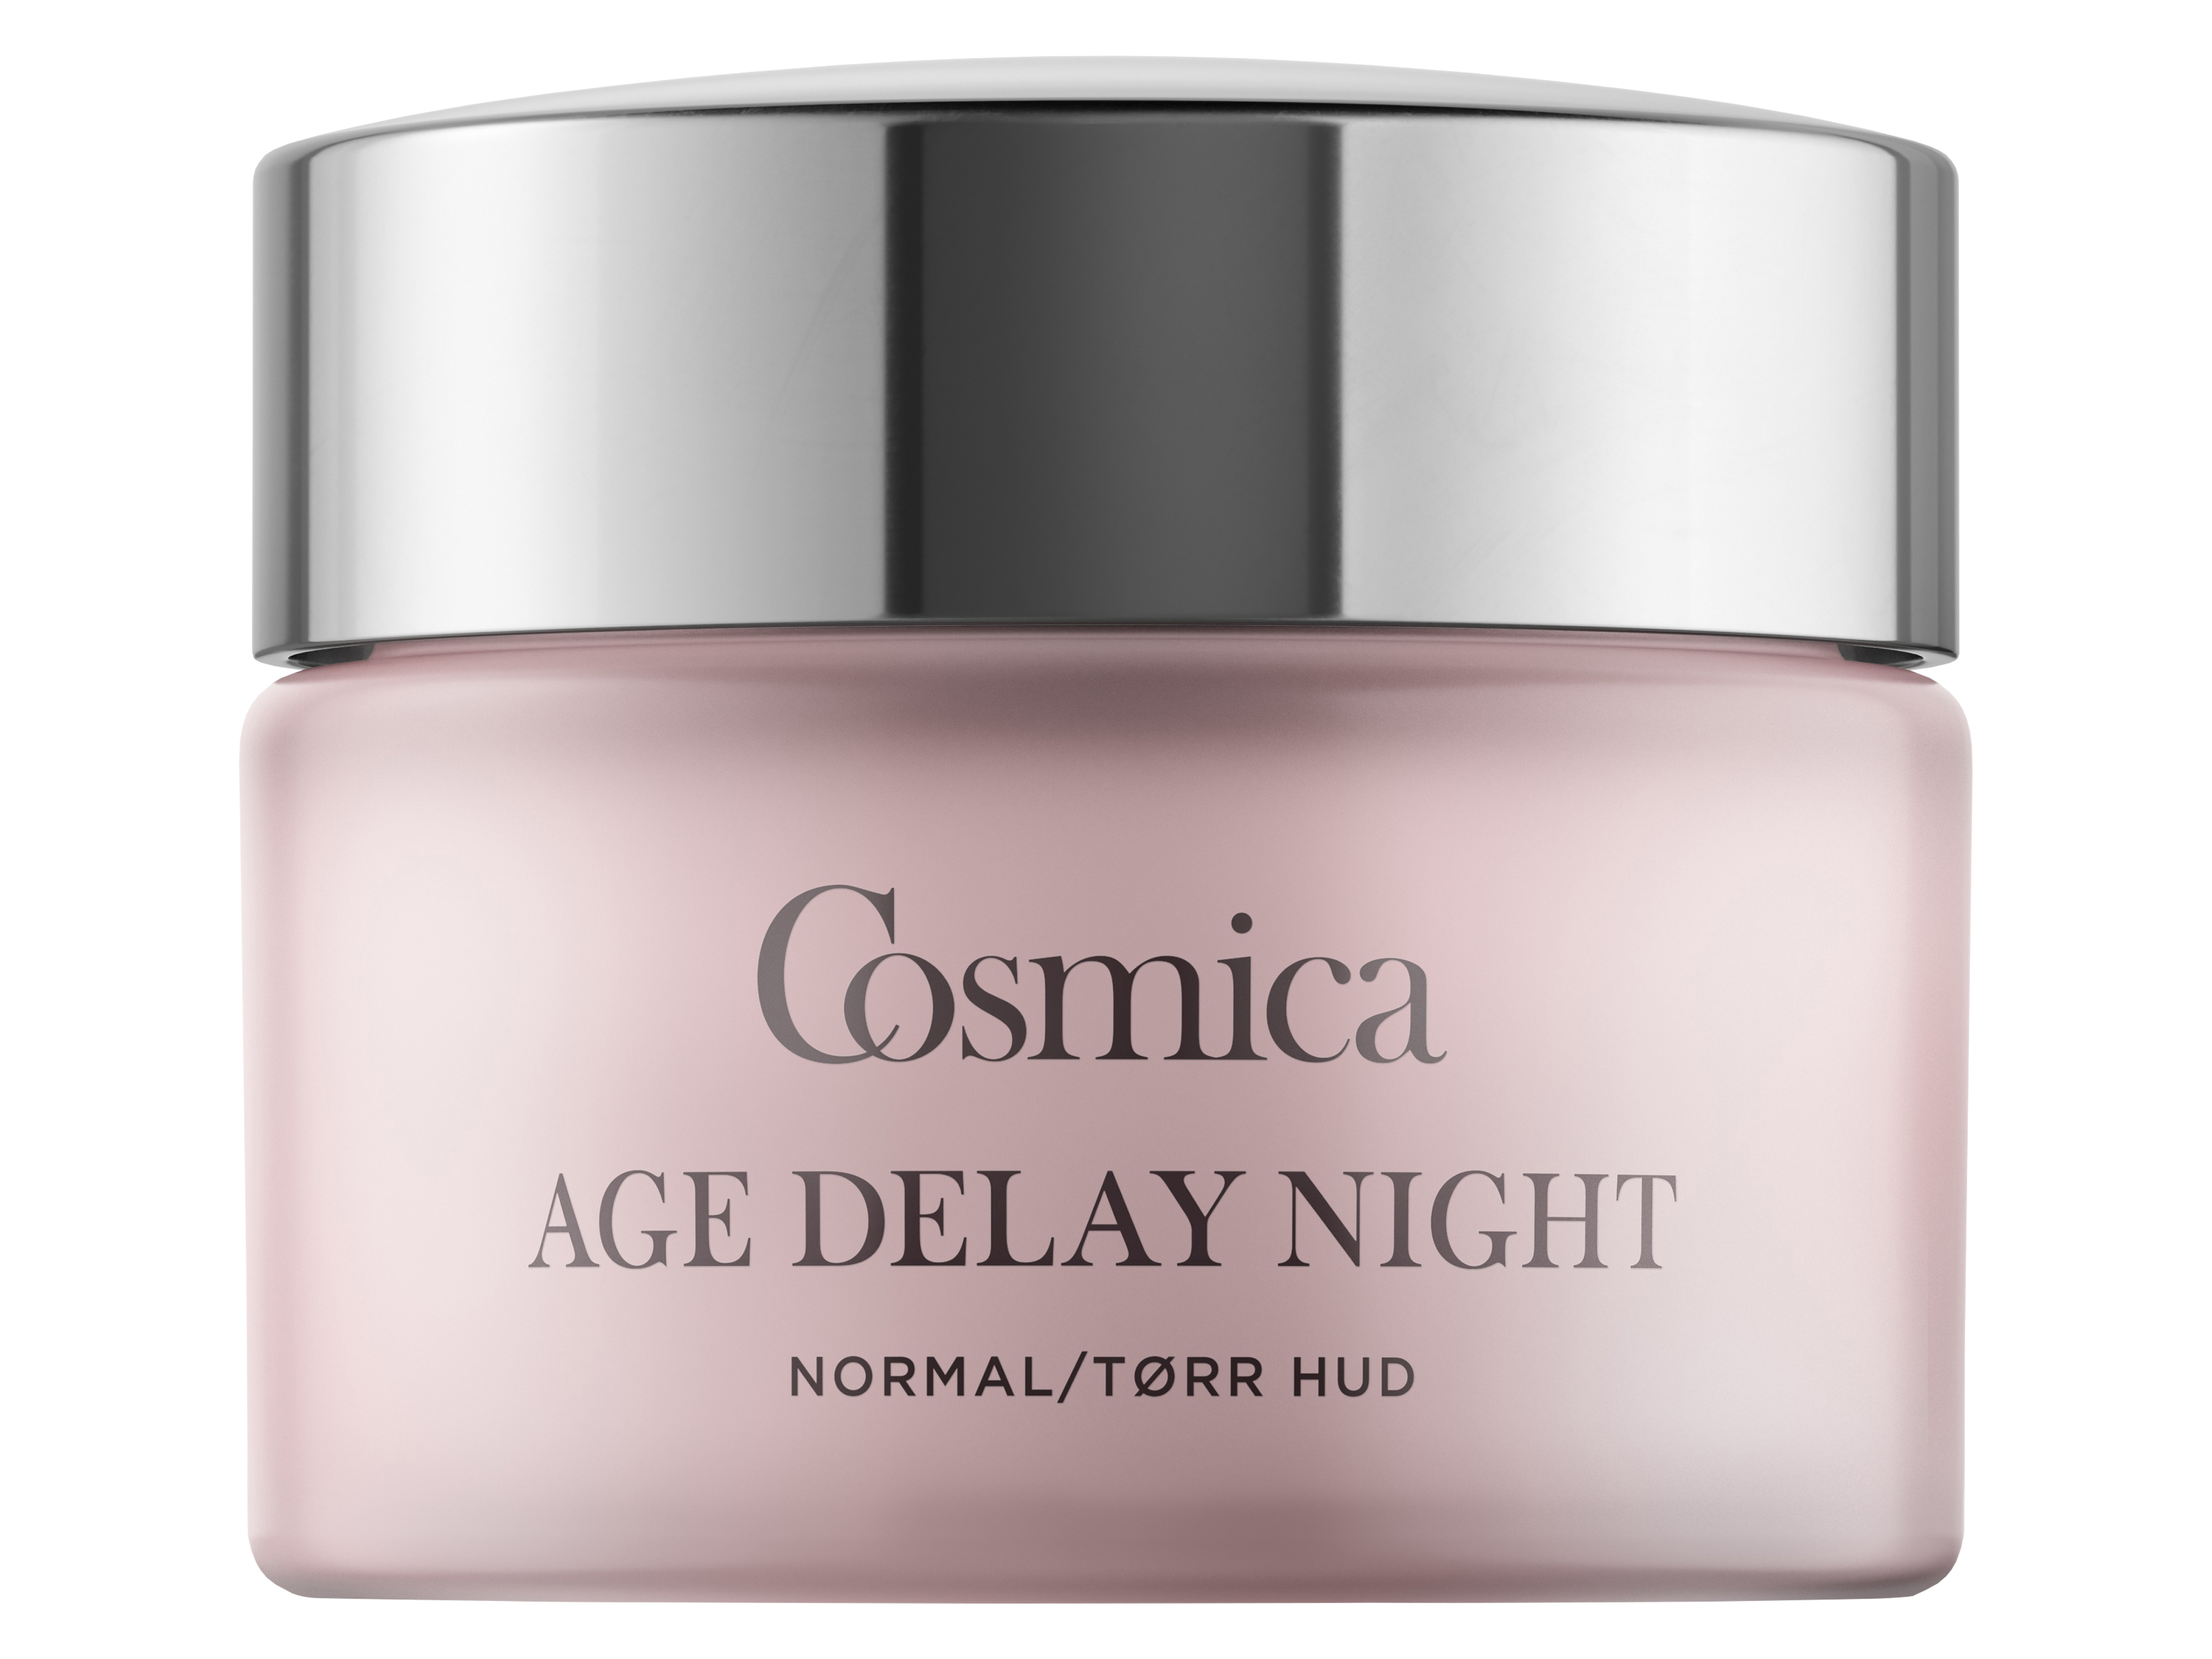 Cosmica Age Delay Night Cream, 50 ml